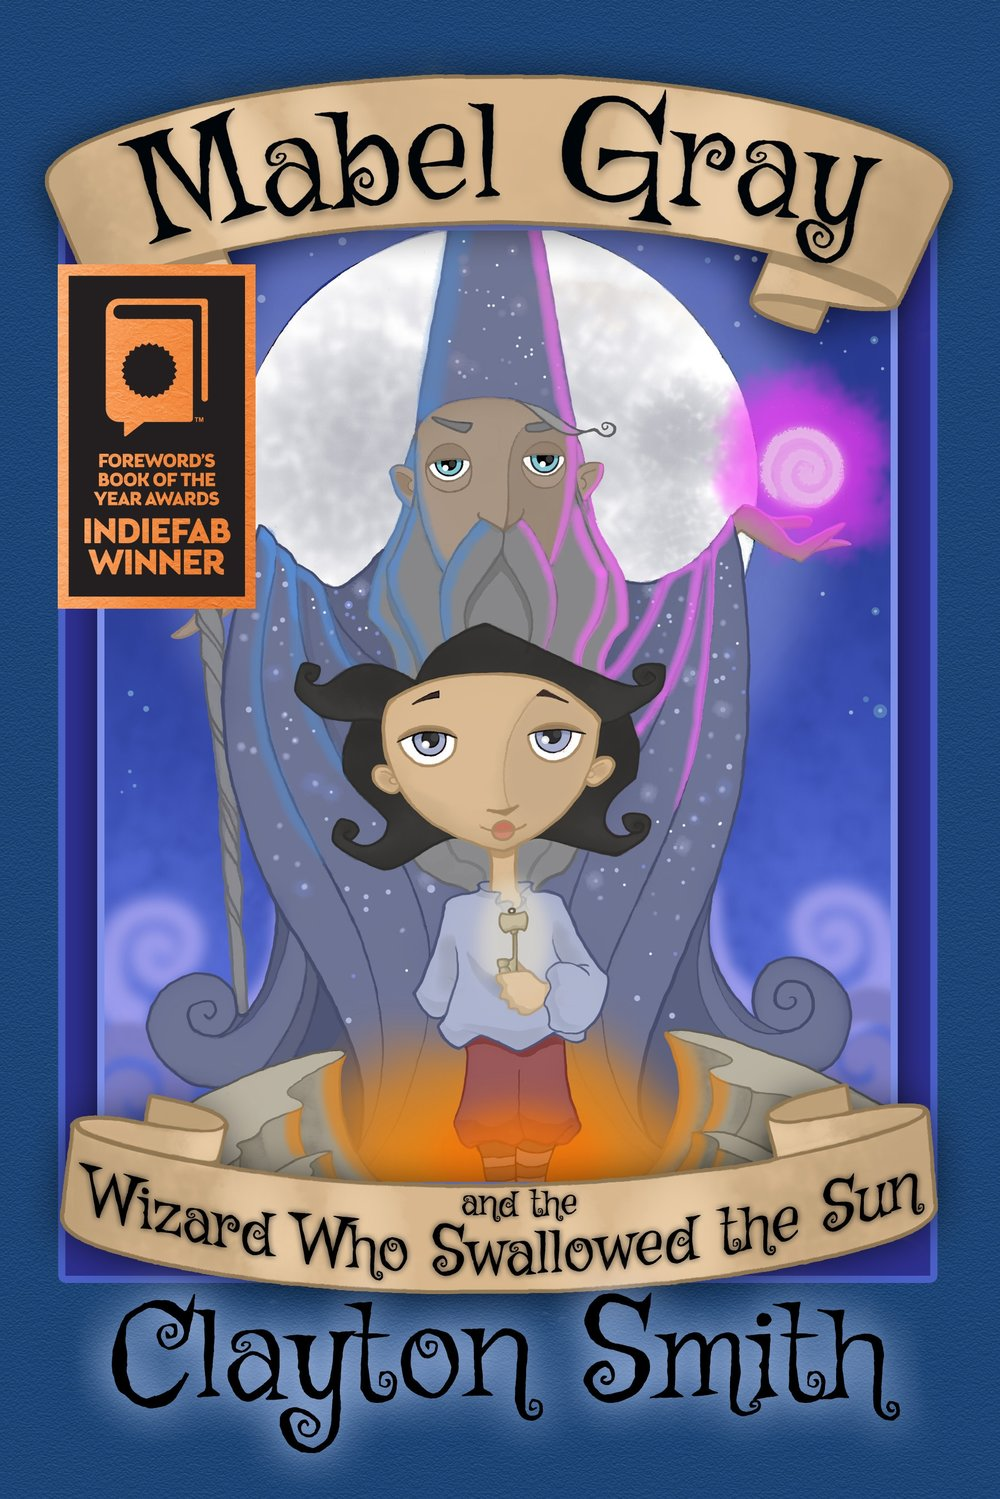 "Mabel Gray and the Wizard Who Swallowed the Sun - 2015 INDIEFAB Book of the Year Award Winner!""Harry Potter meets Tim Burton"" in the award-winning adventure that's ""an imaginative romp around a fantastical world of wizards, talking statues, skeletons, a Grandfather Tree...it is whimsical."""